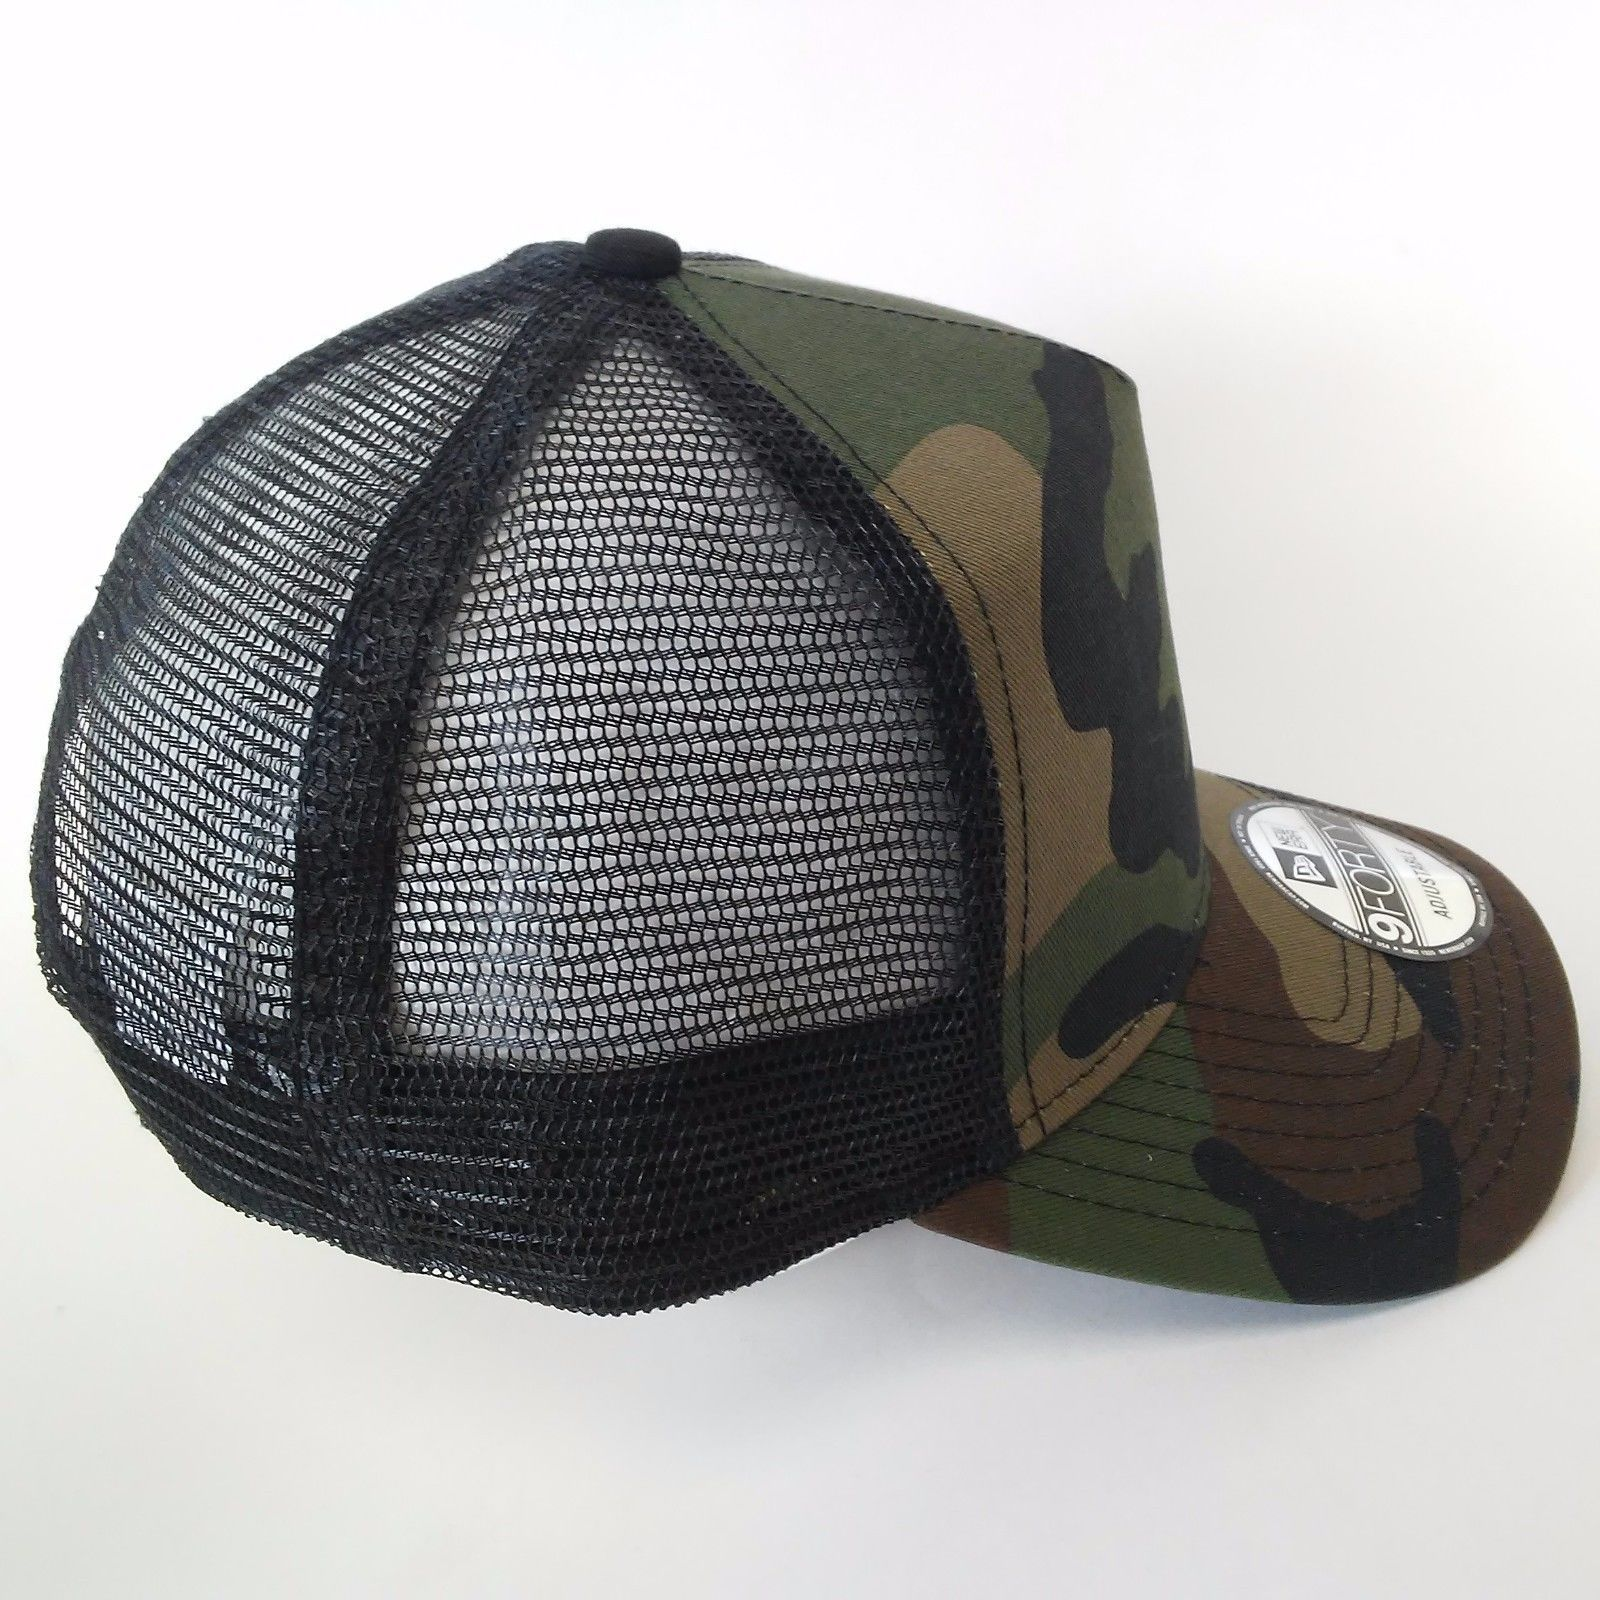 New Era 9FORTY Snapback Trucker Cap Blank Camouflage Black Camo Military  9Forty afd7ae3a9712